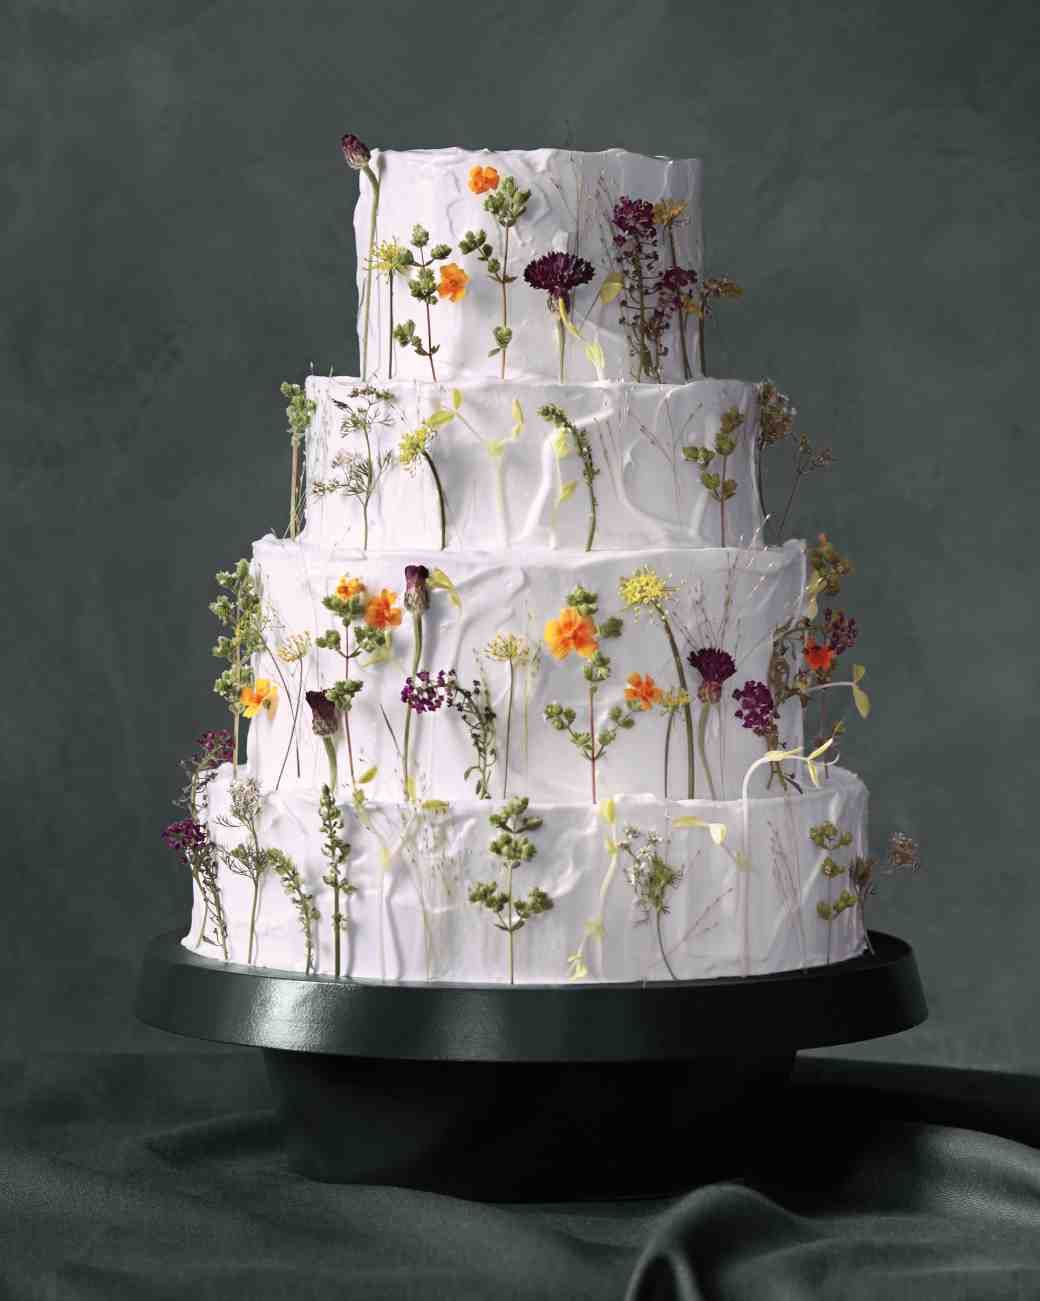 wedding cake how to decorate 6 fresh ways to decorate wedding cakes with flowers 22852